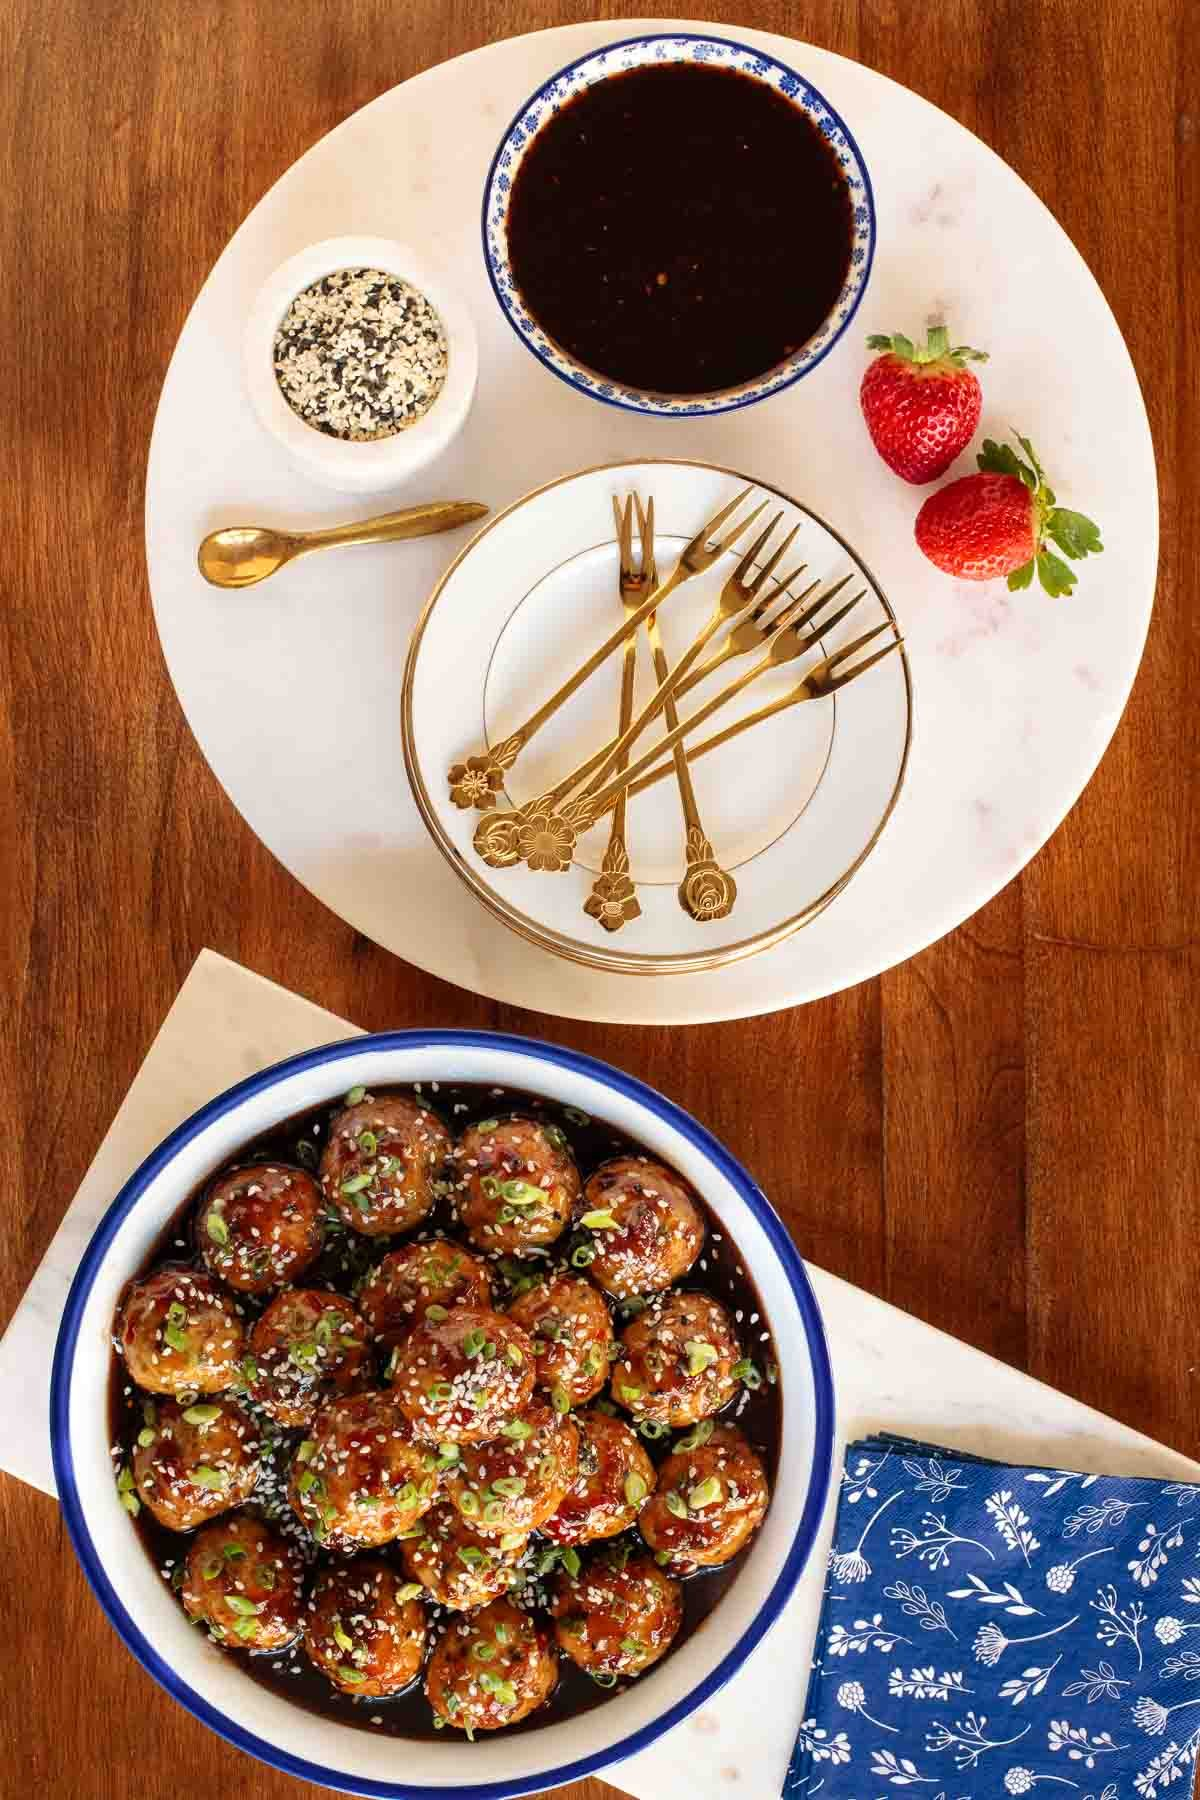 Overhead vertical photo of Strawberry Balsamic Glazed Chicken Meatballs with accessories for serving them as appetizers.